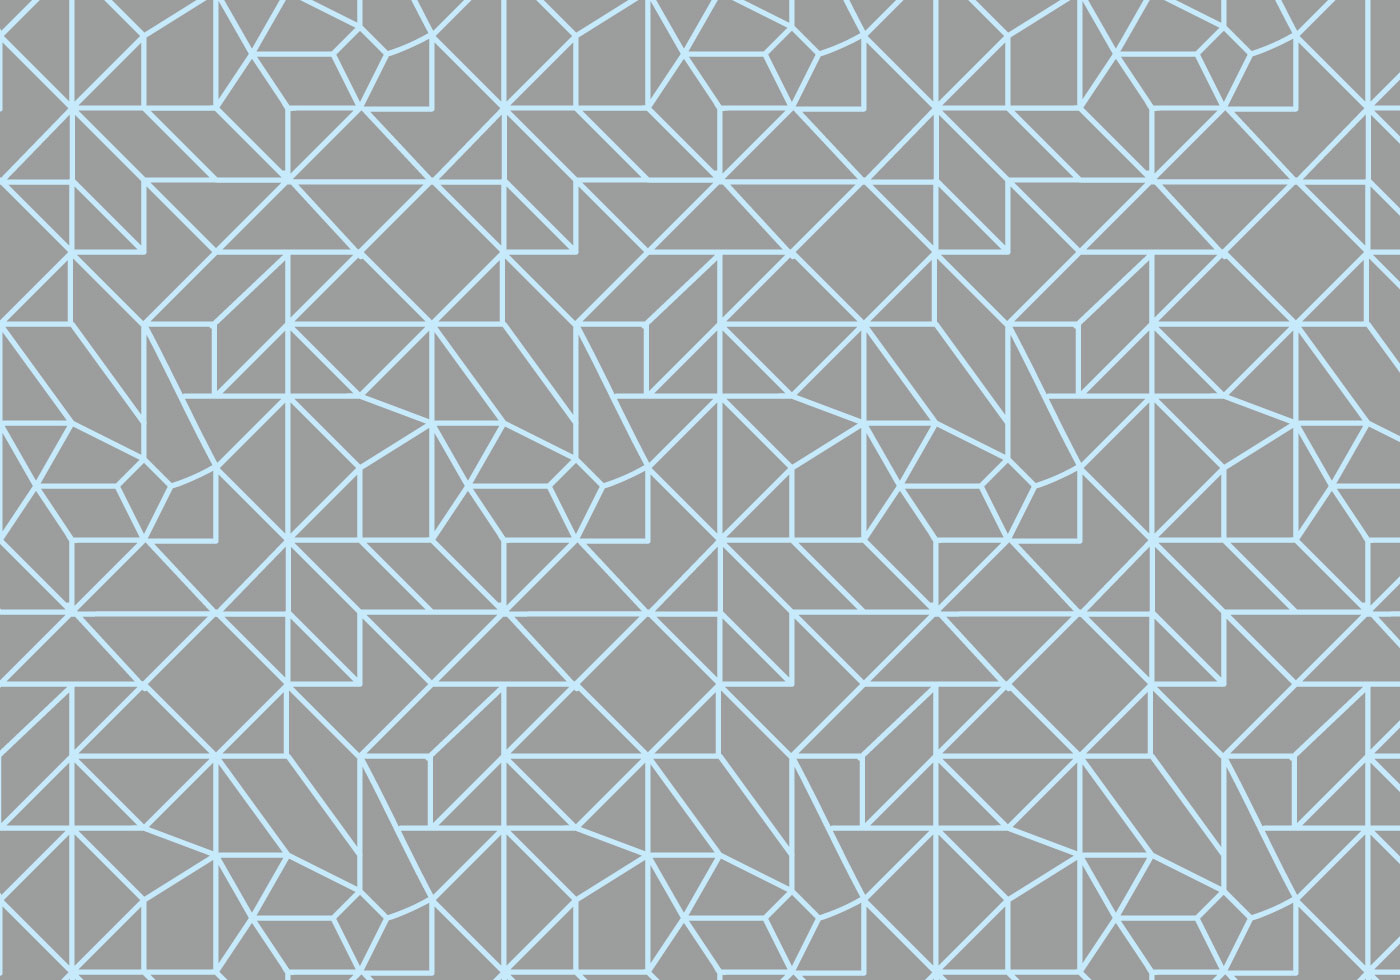 Geometric Pattern Free Vector Designs & Backgrounds | 13,048